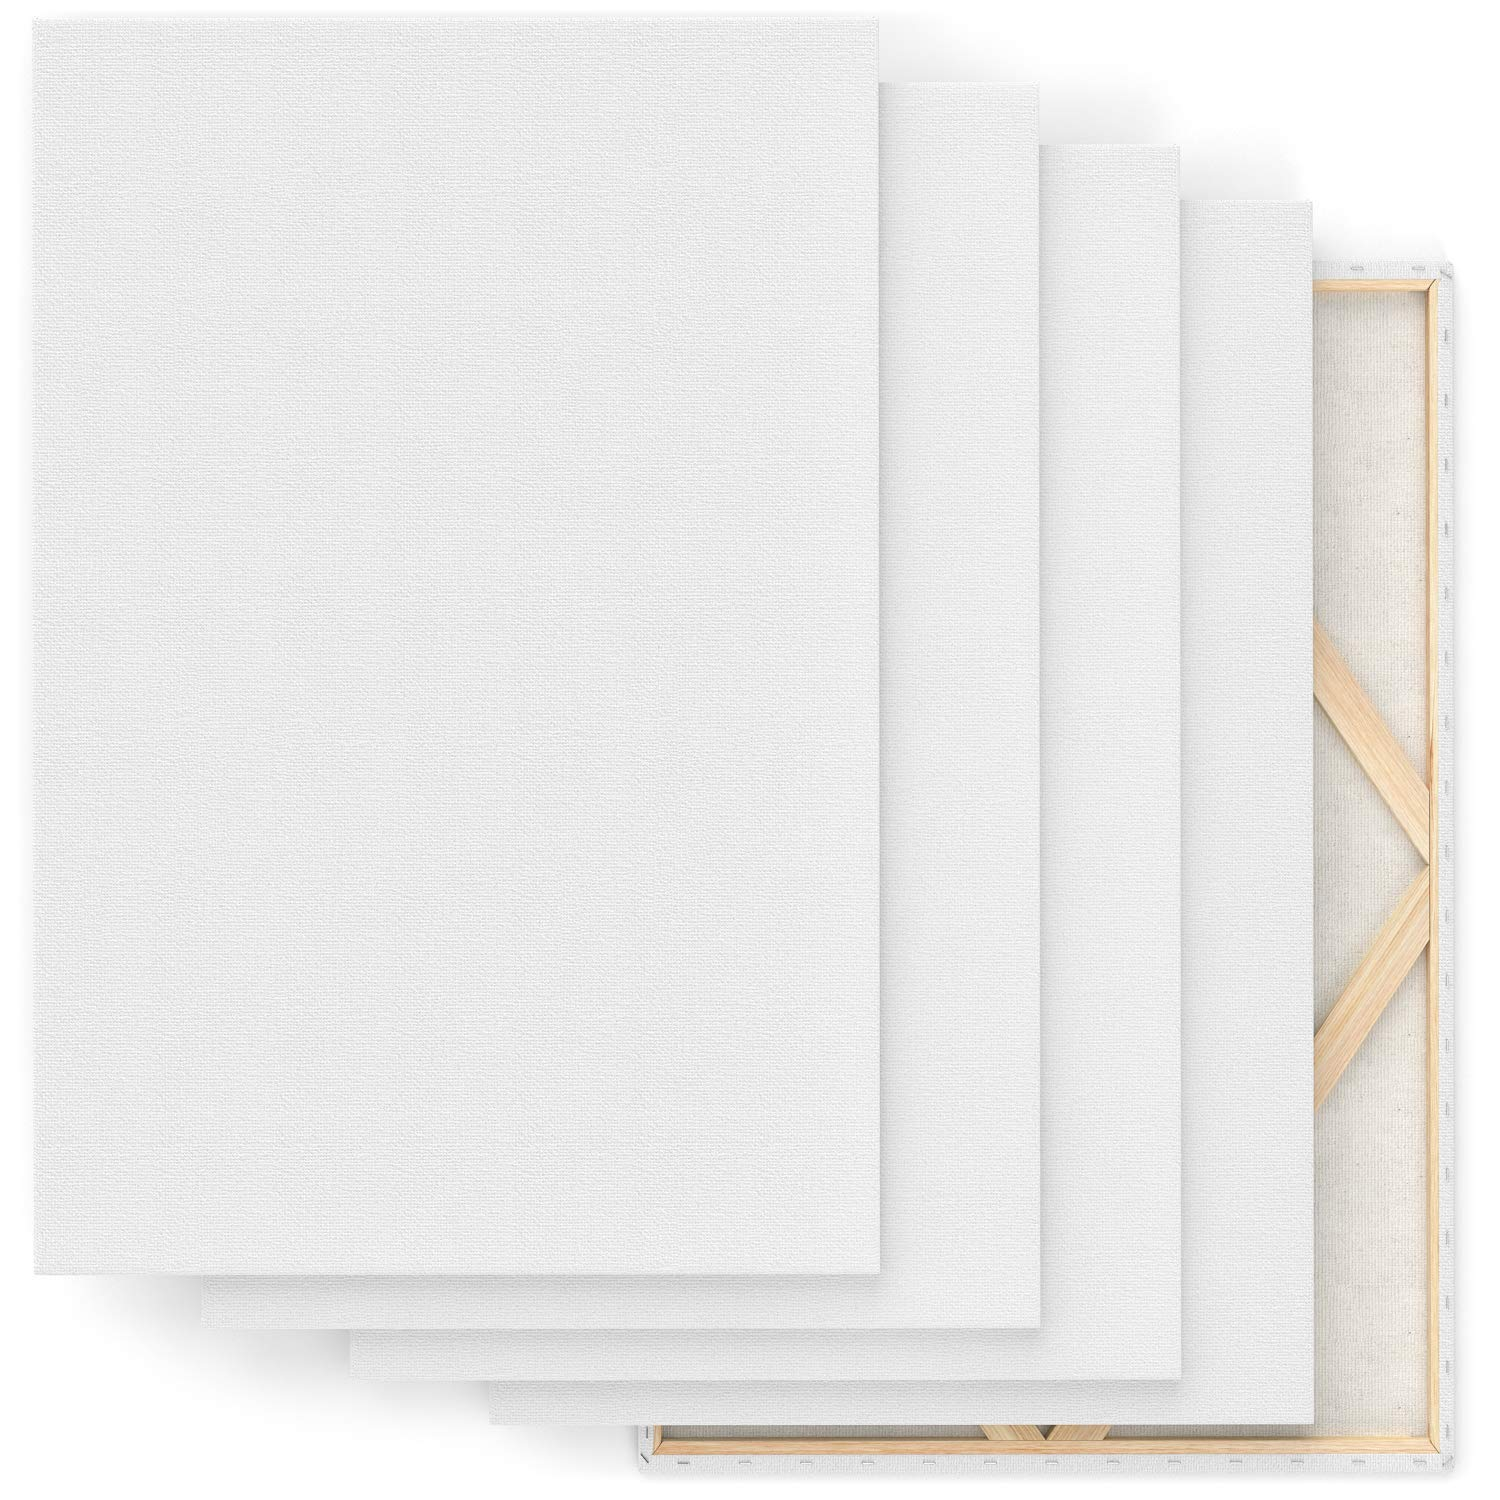 """Arteza 24x36"""" Stretched White Blank Canvas, Bulk Pack of 5, Primed, 100% Cotton for Painting, Acrylic Pouring, Oil Paint & Wet Art Media, Canvases for Professional Artist, Hobby Painters & Beginner by ARTEZA (Image #5)"""